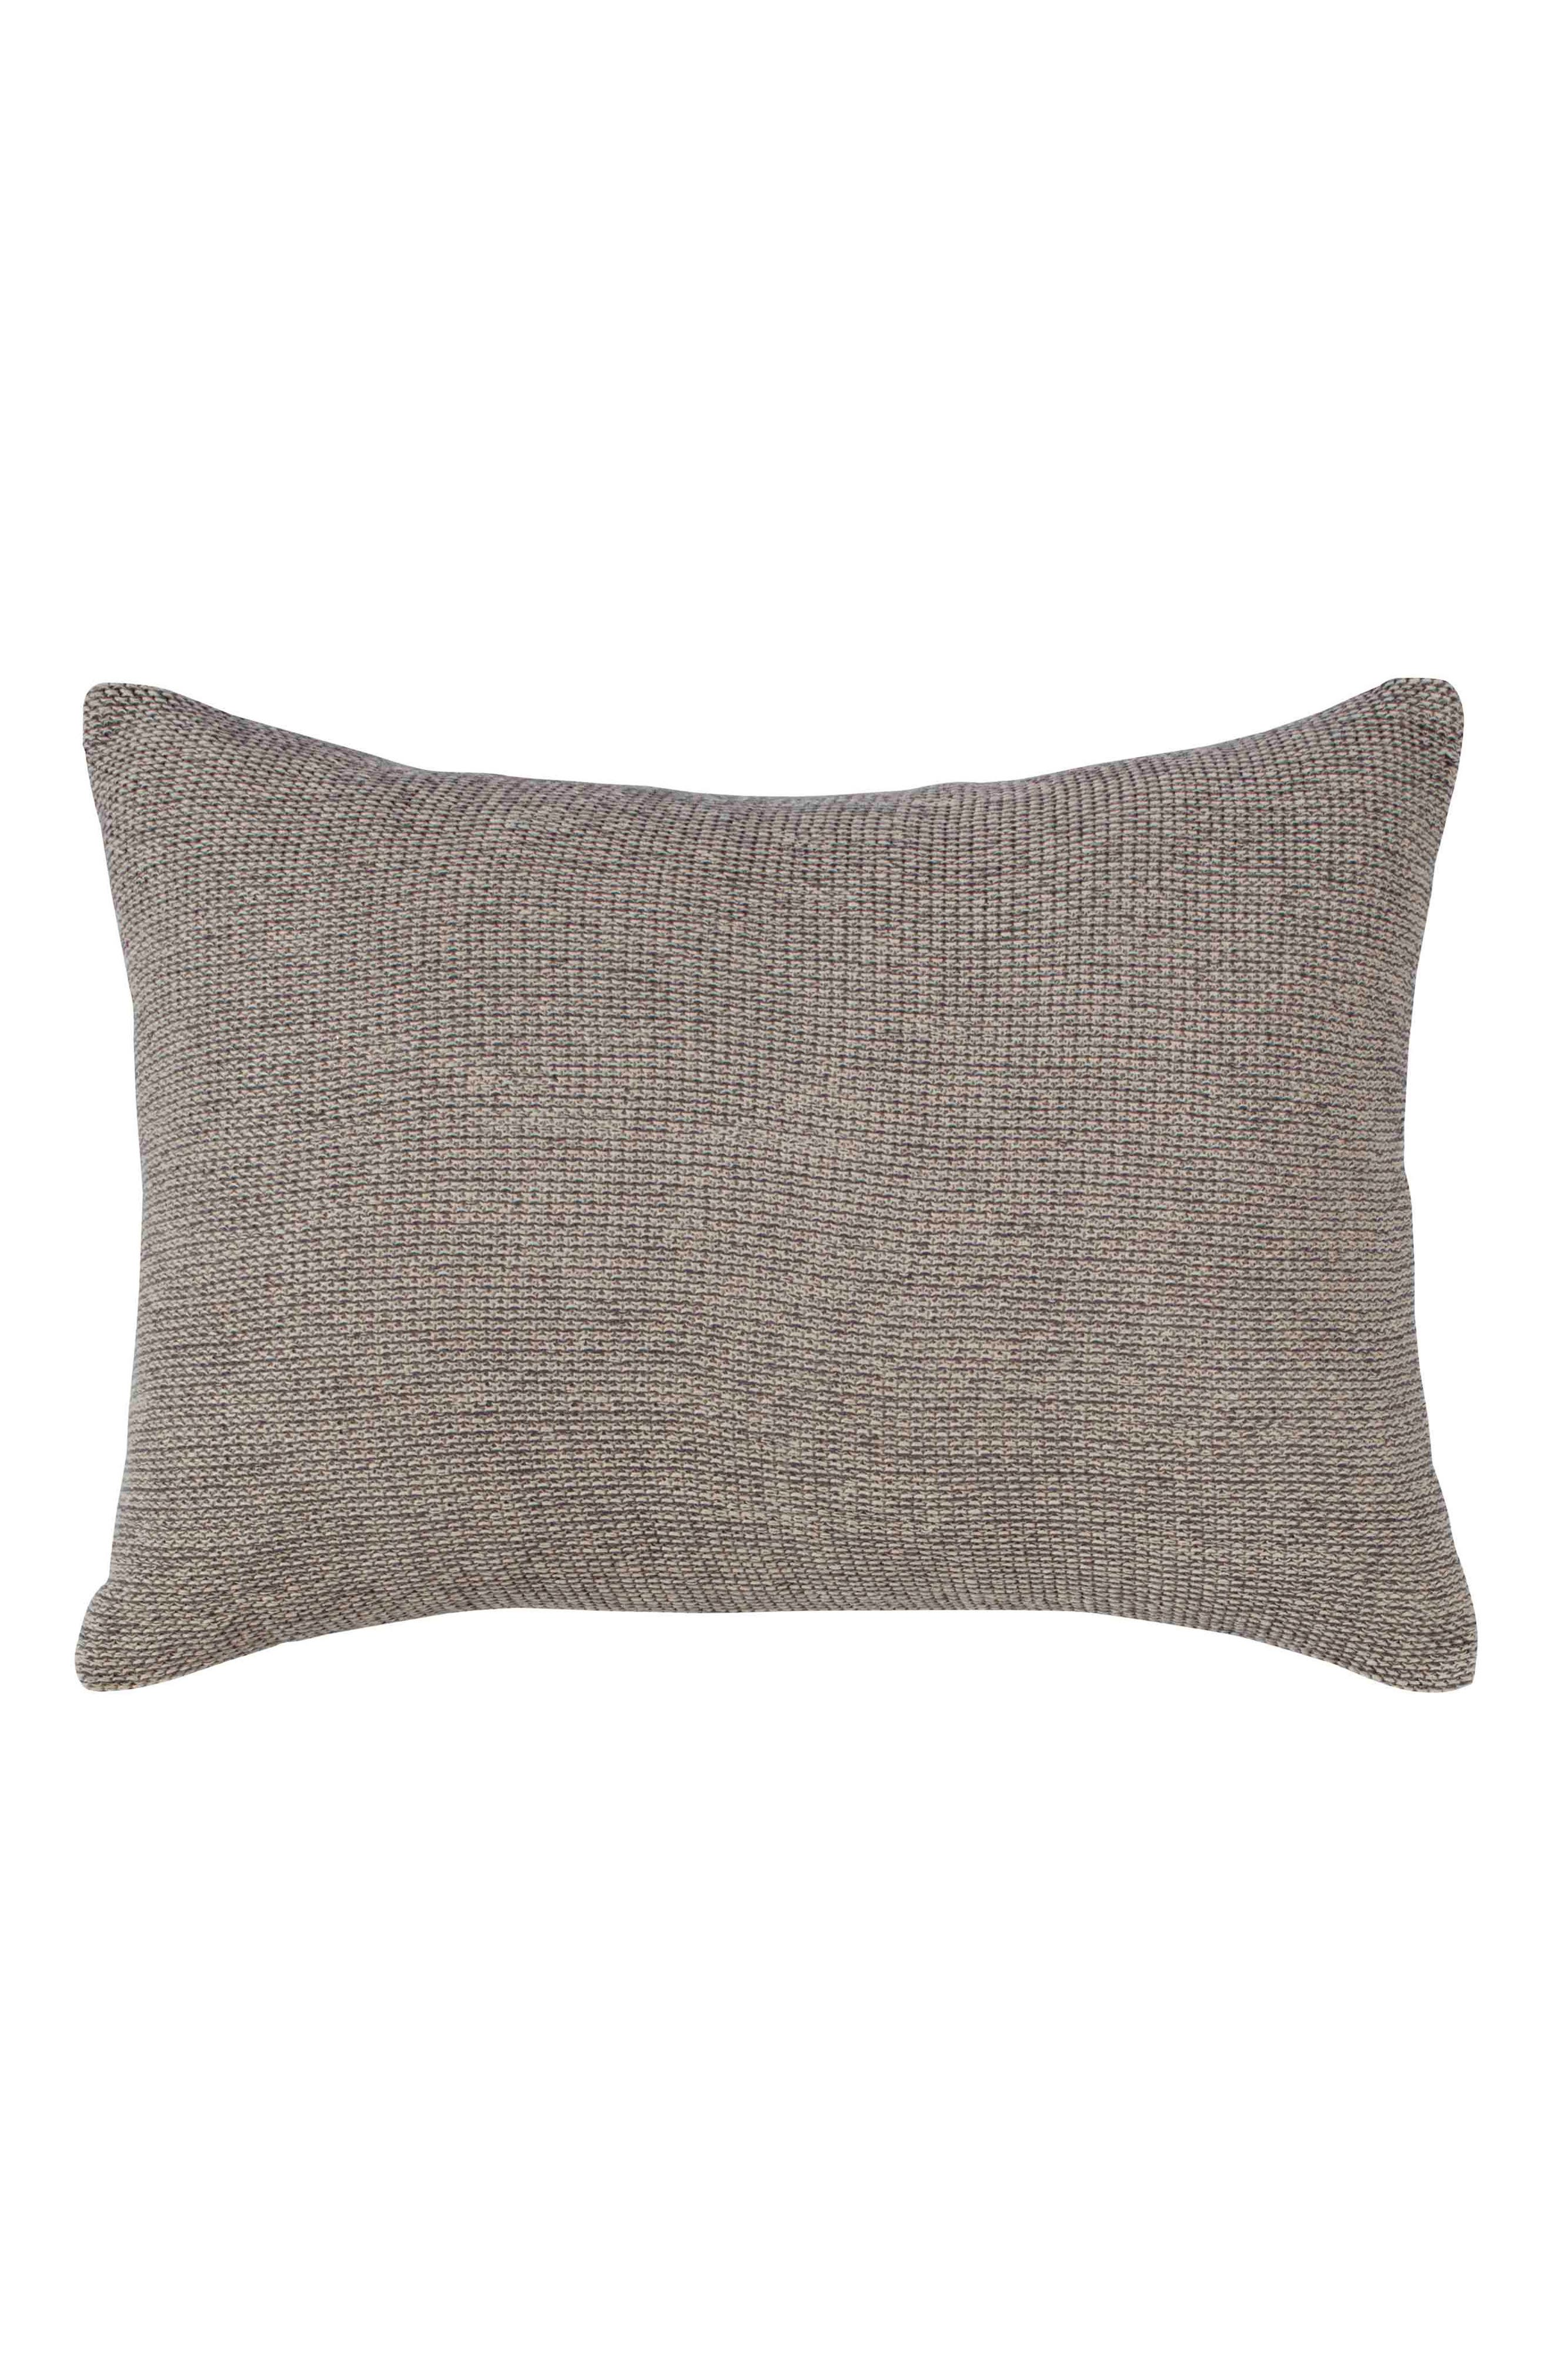 Tulare Bicolor Knit Accent Pillow, Main, color, NATURAL